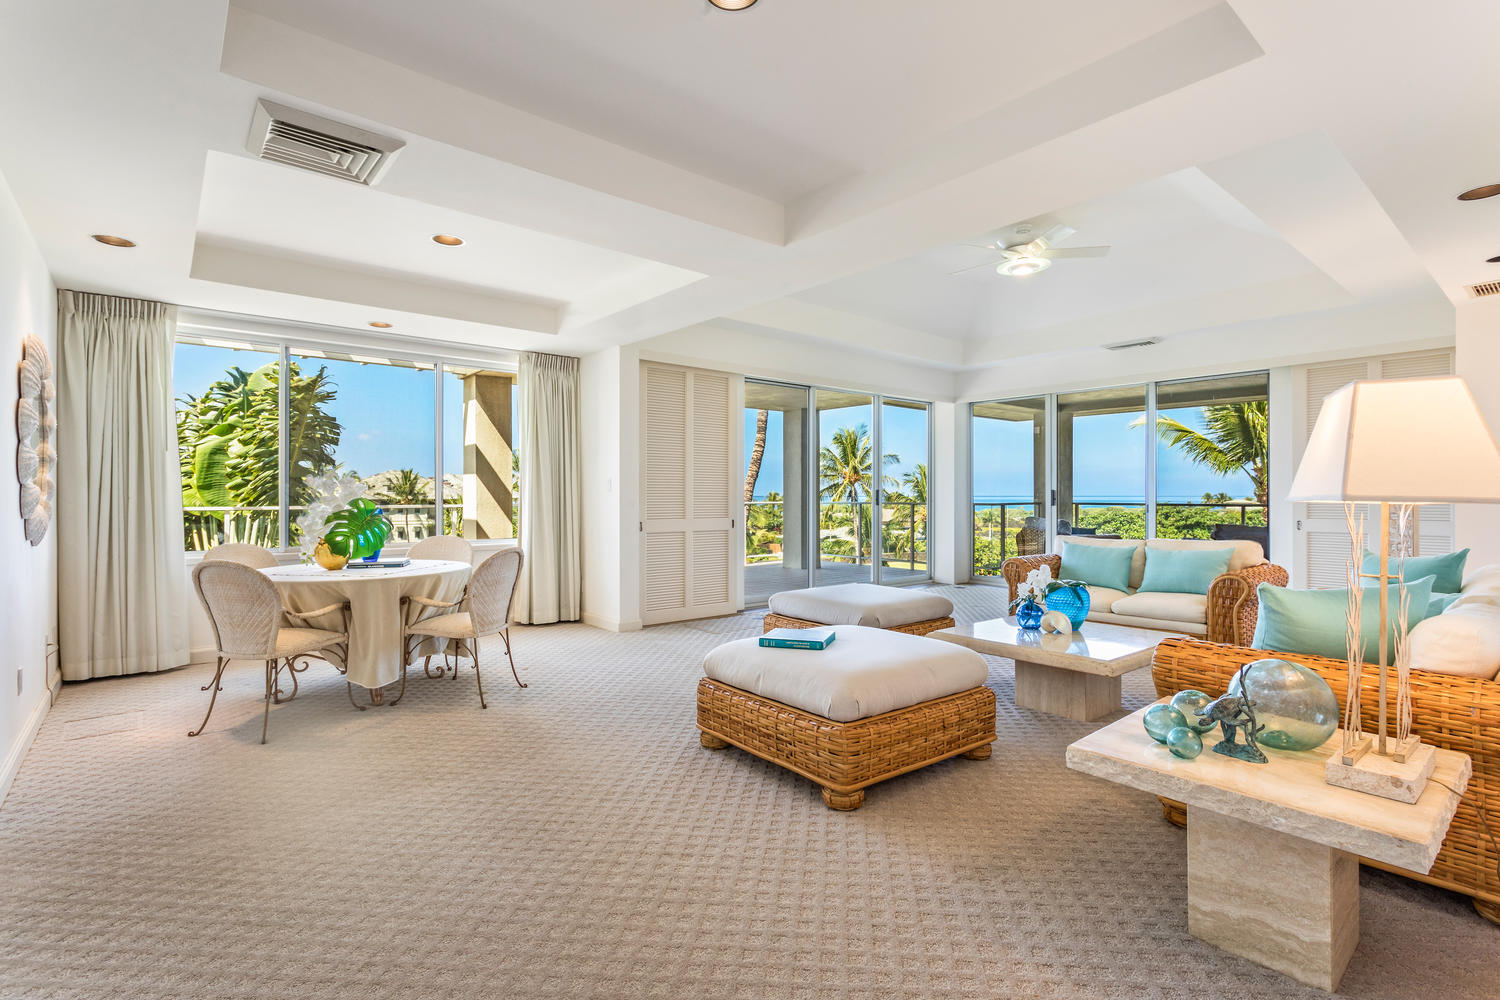 Uncluttered spaces are essential; pare down your furnishings | Vista Waikoloa B-304 offered at $1,350,000.